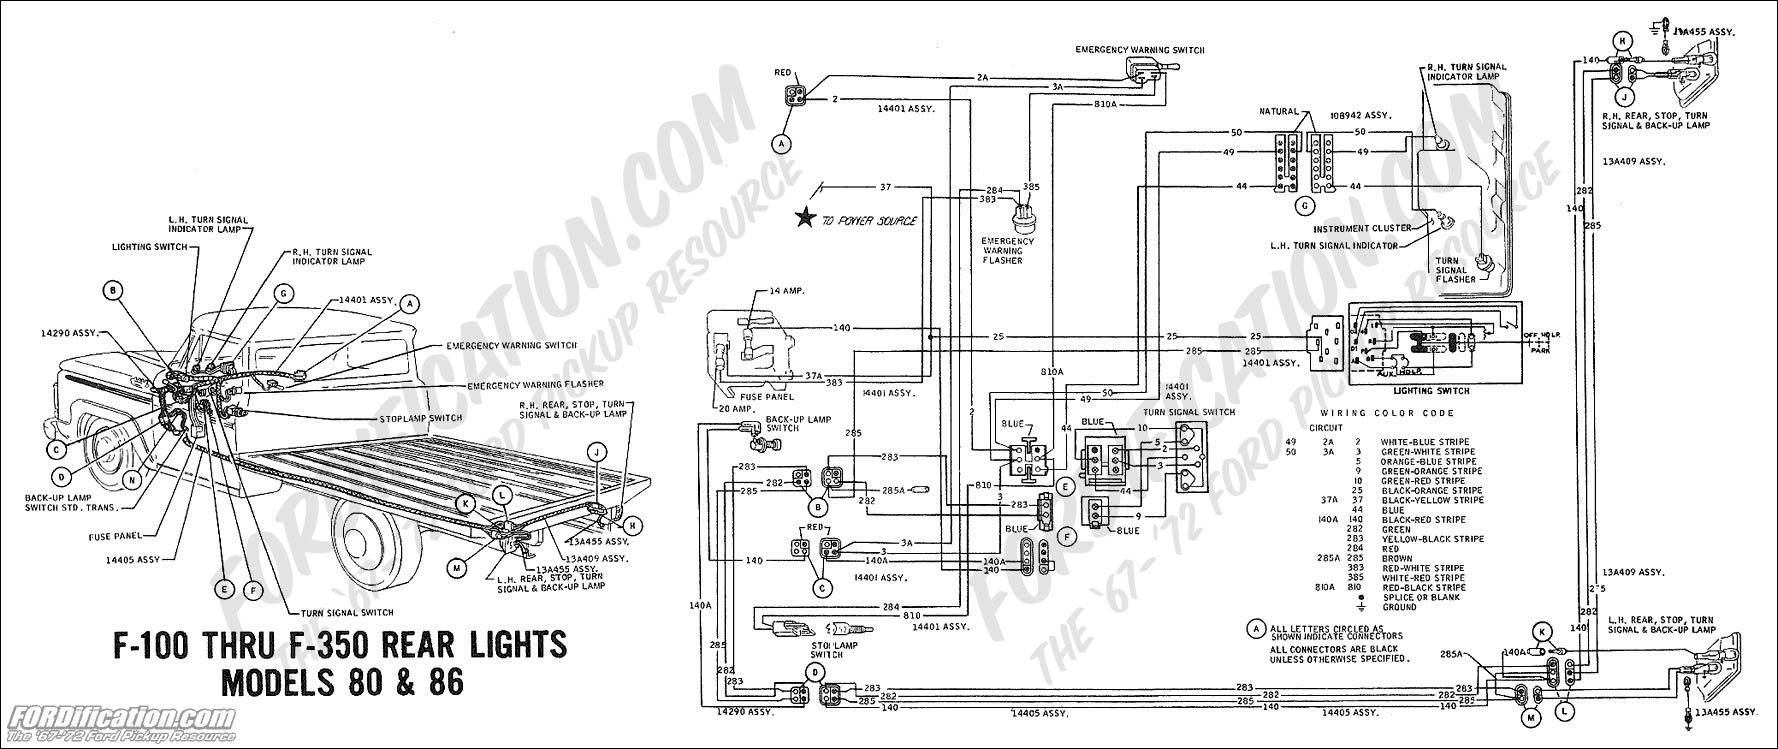 wiring_69rearlights mdls80 86 ford truck technical drawings and schematics section h wiring 2013 Ford F350 Wiring Diagram at mr168.co